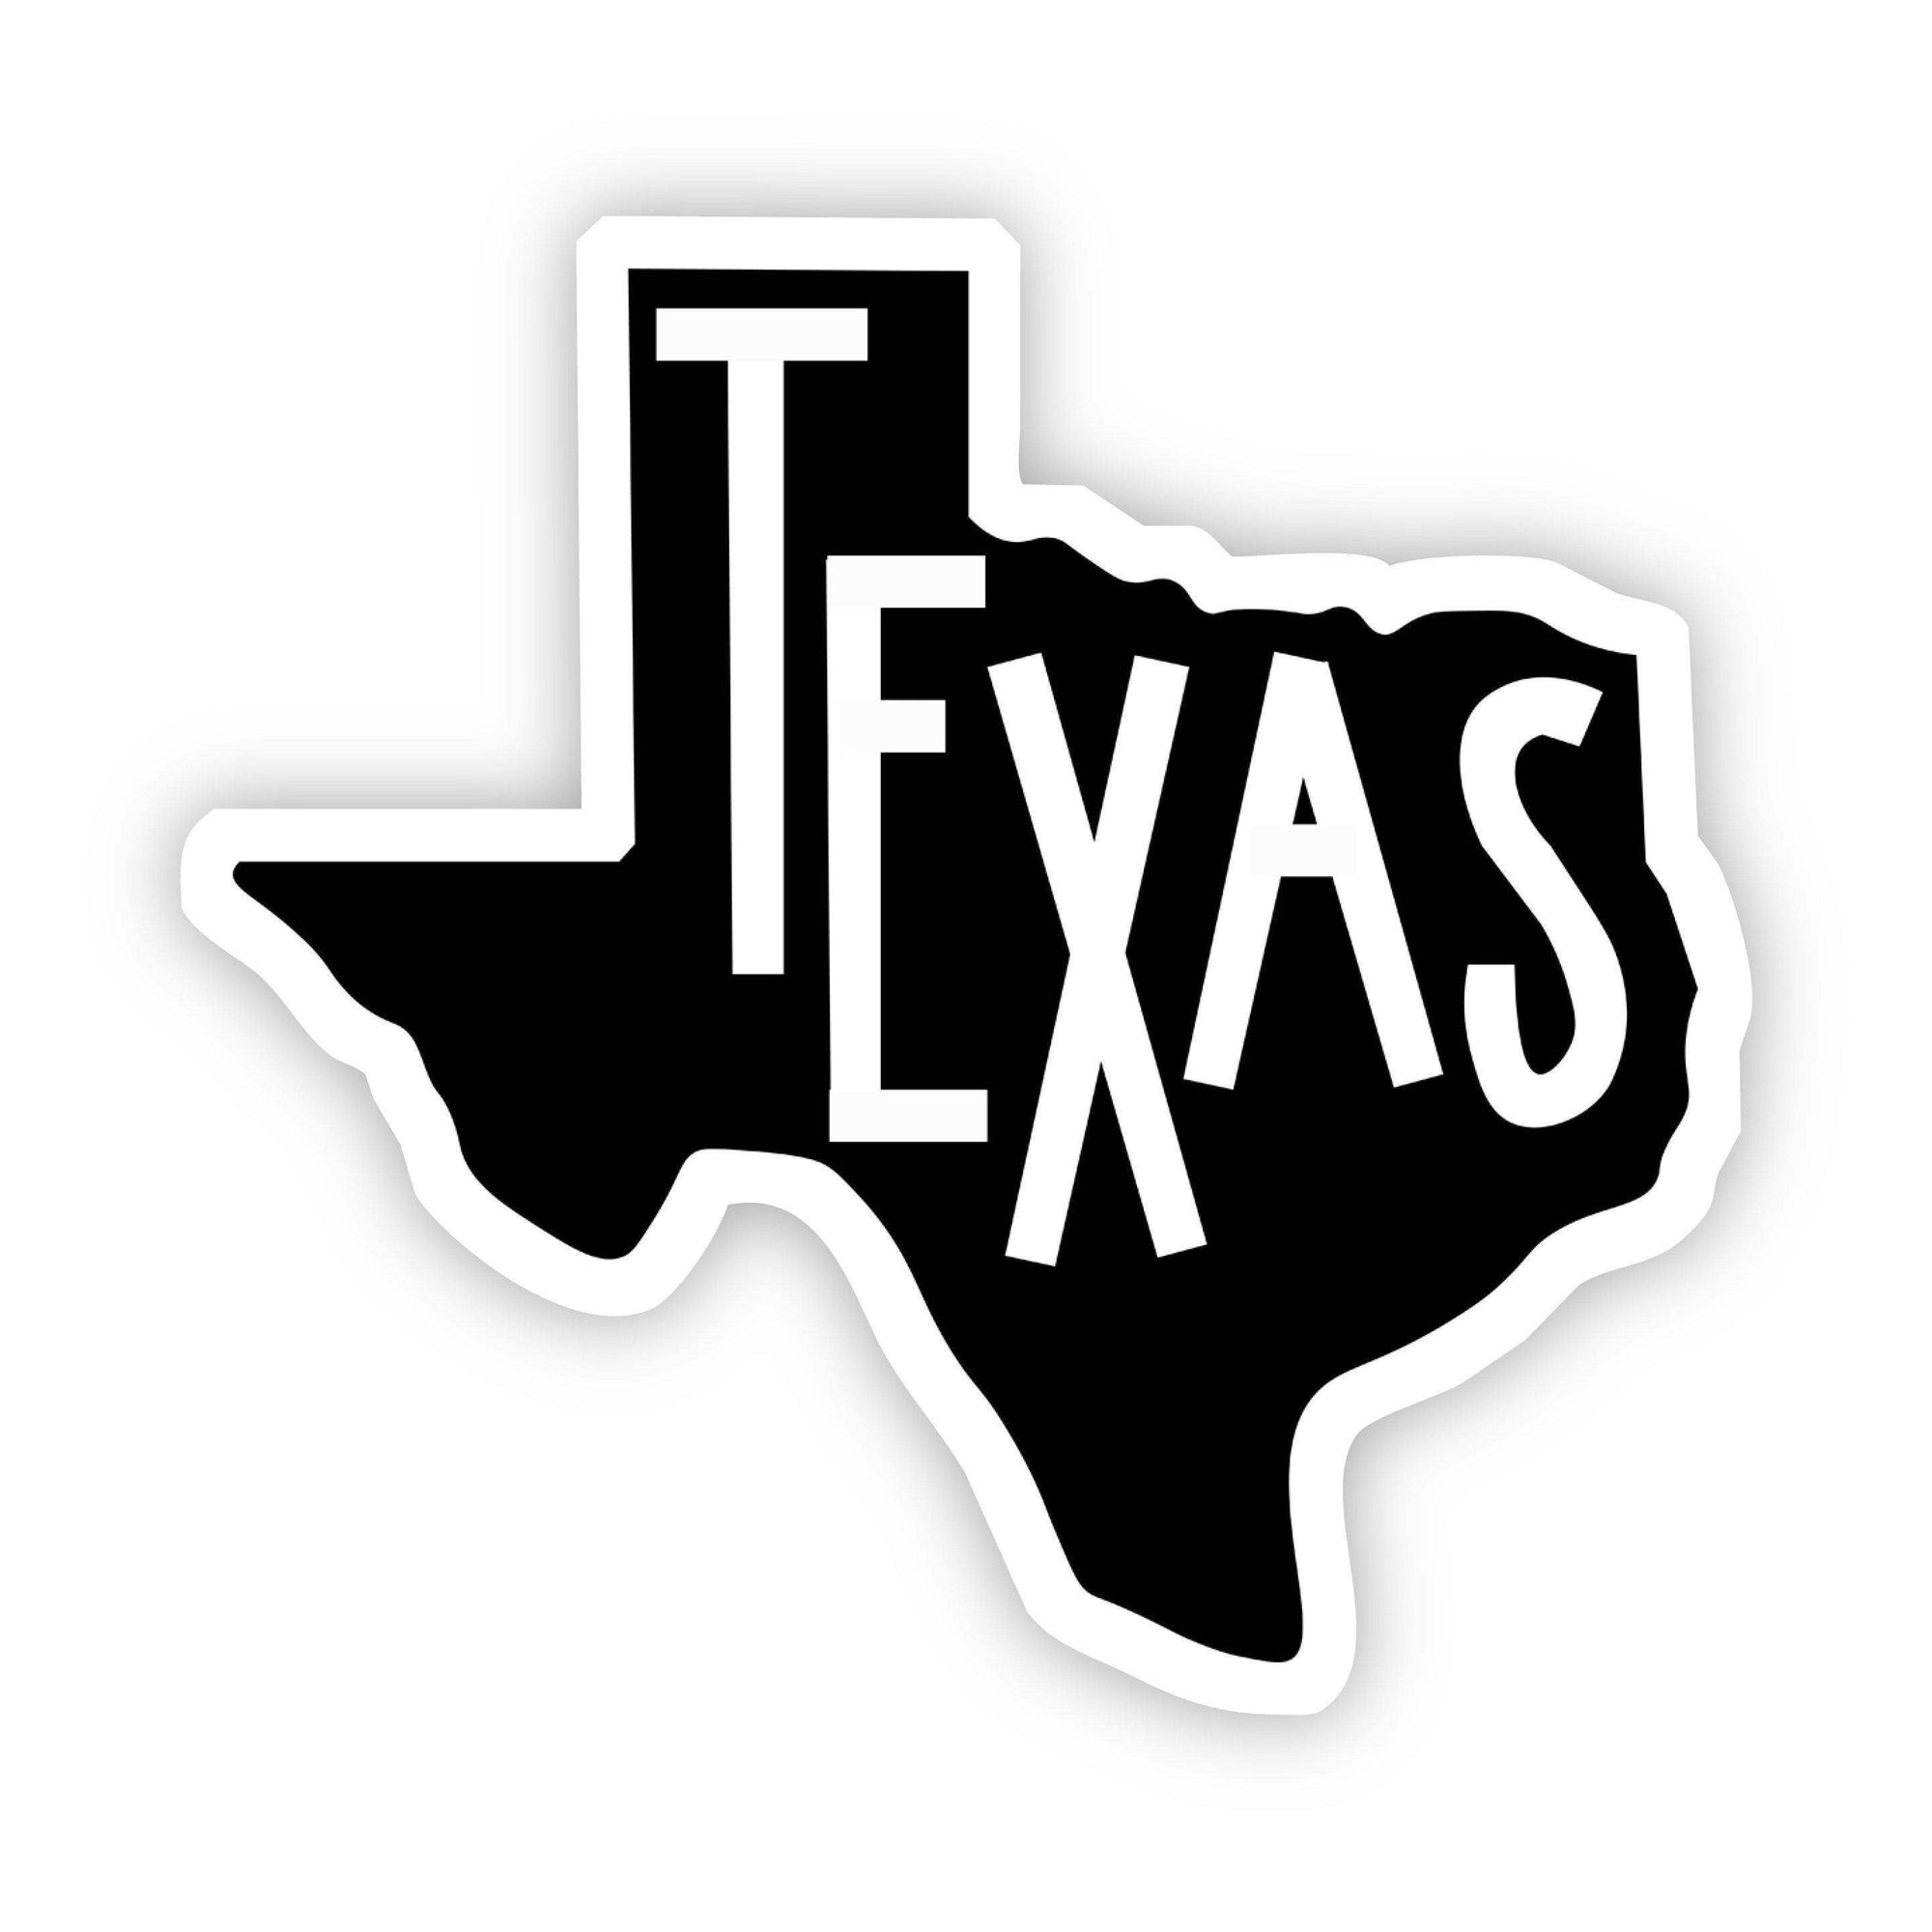 Big Moods - Texas Sticker (Black and White)